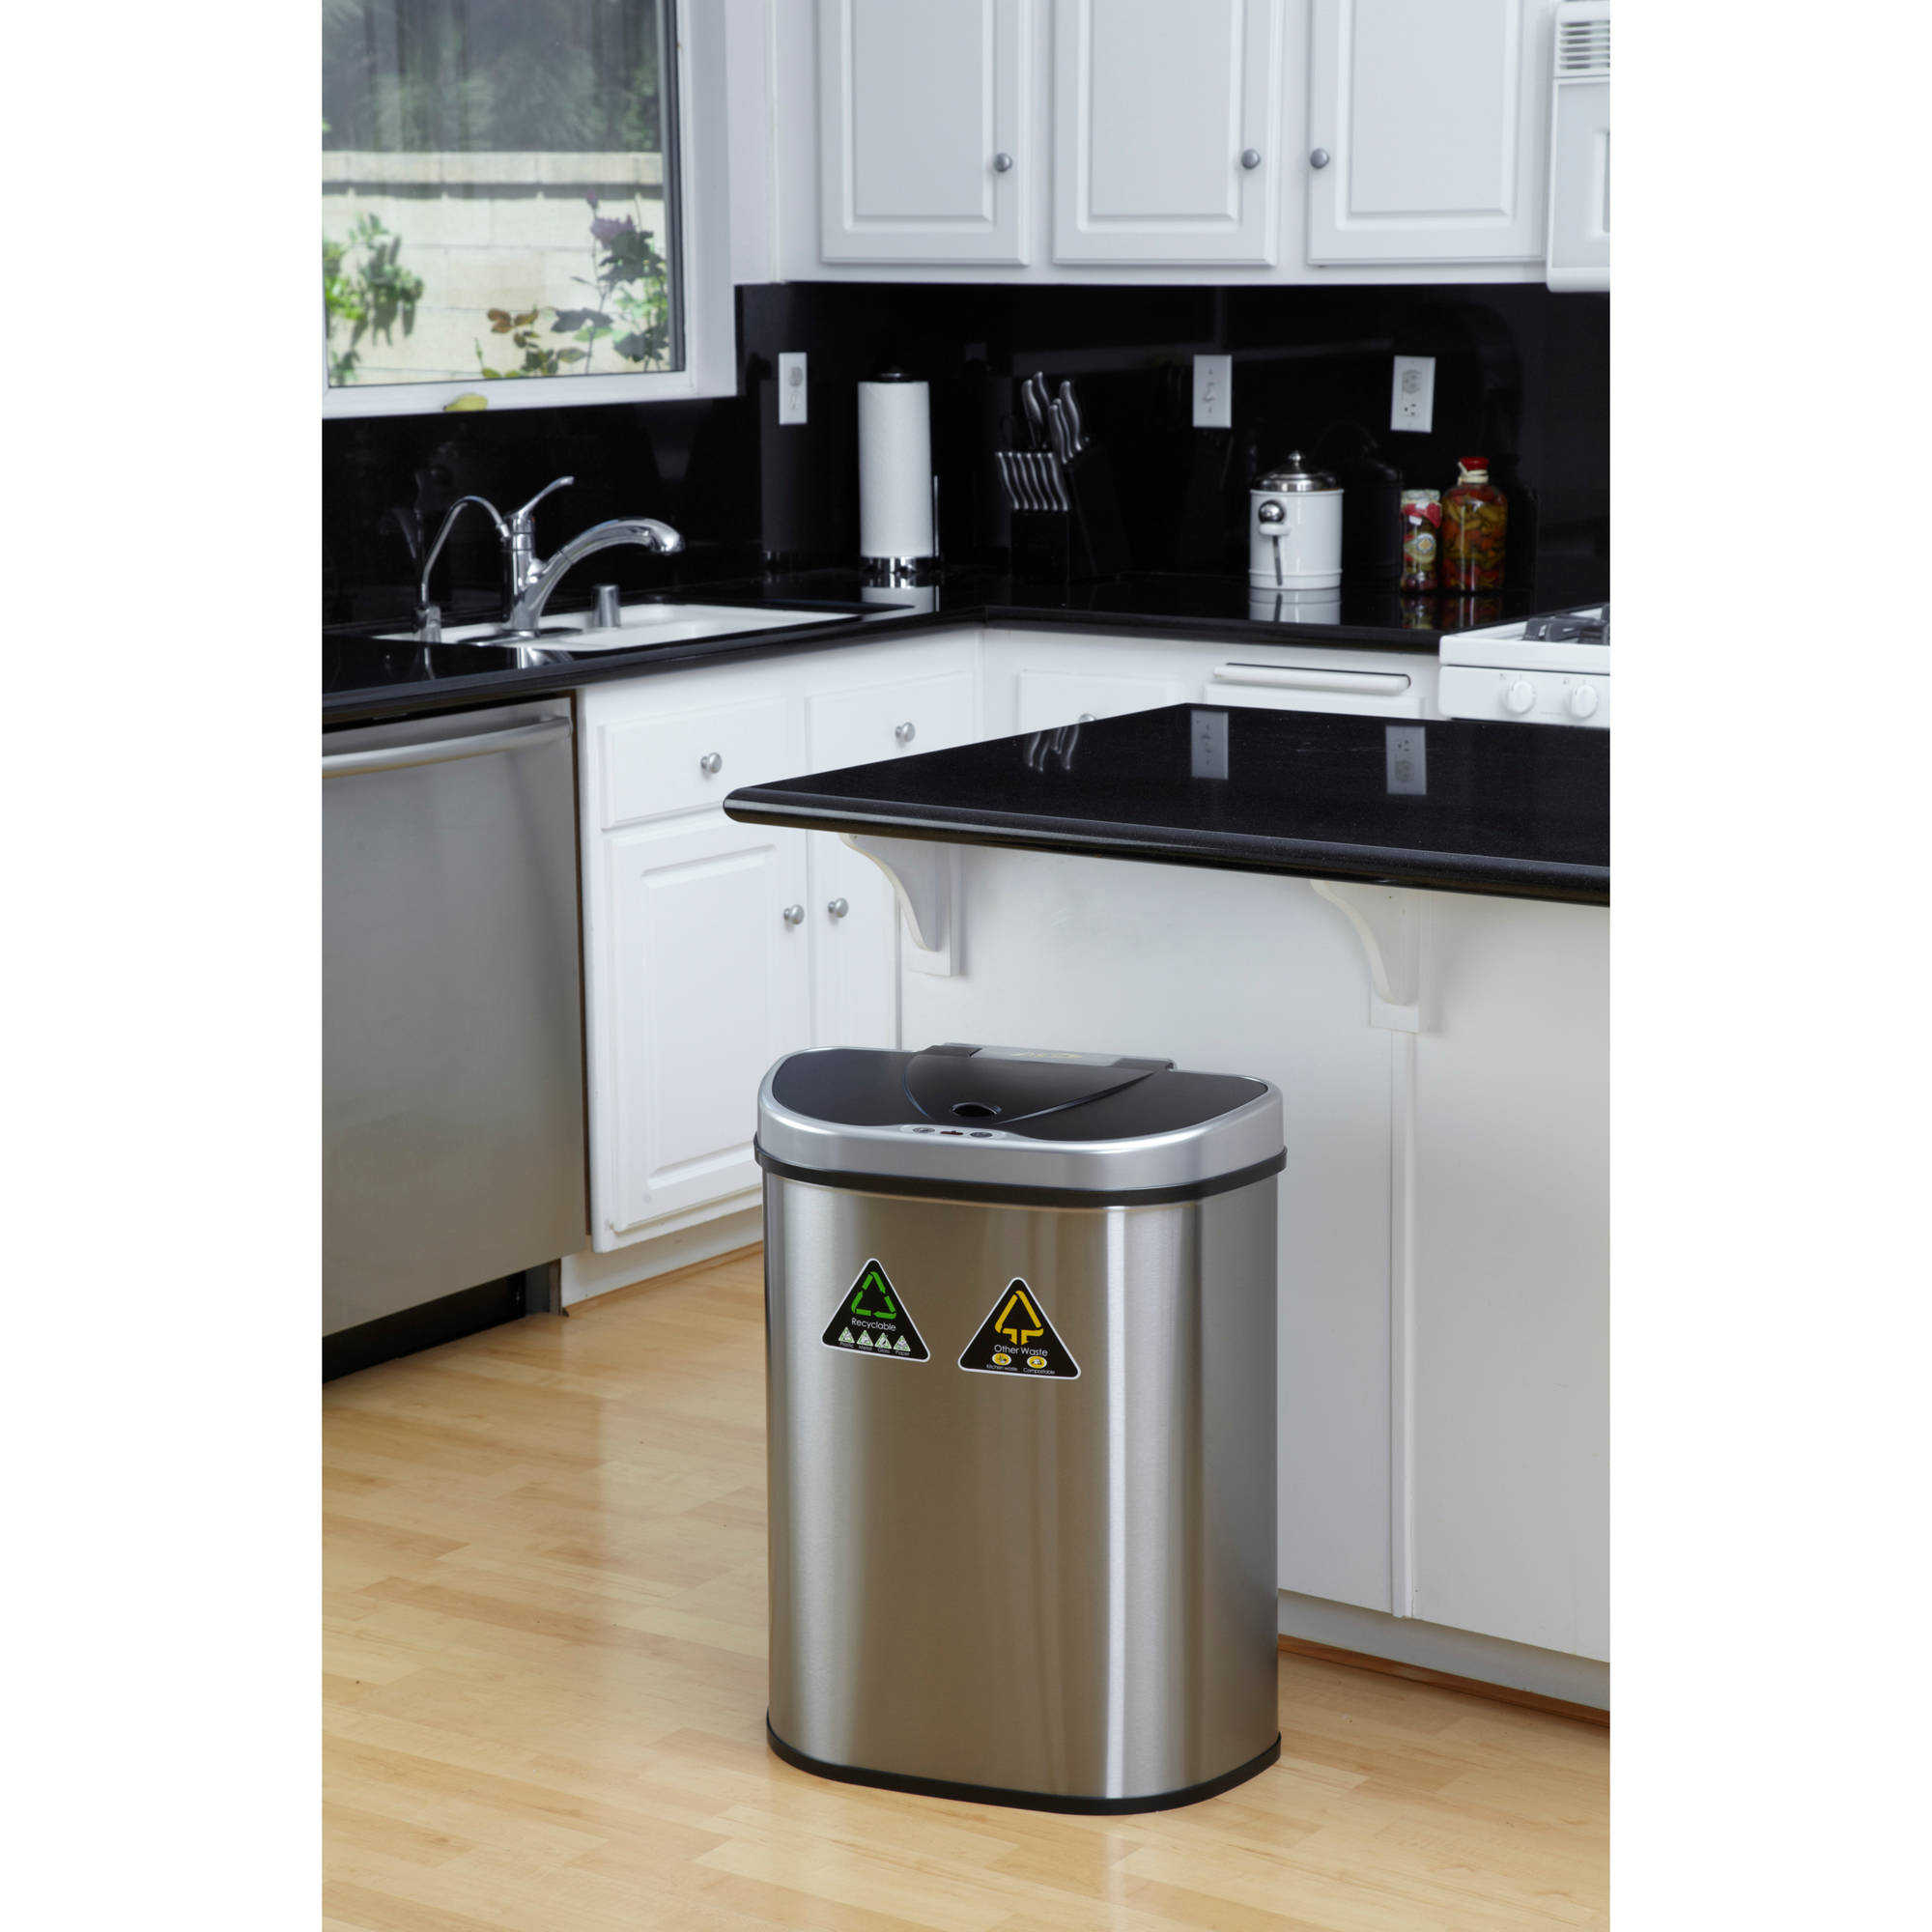 nine stars 18.5-gallon motion sensor recycle unit and trash can